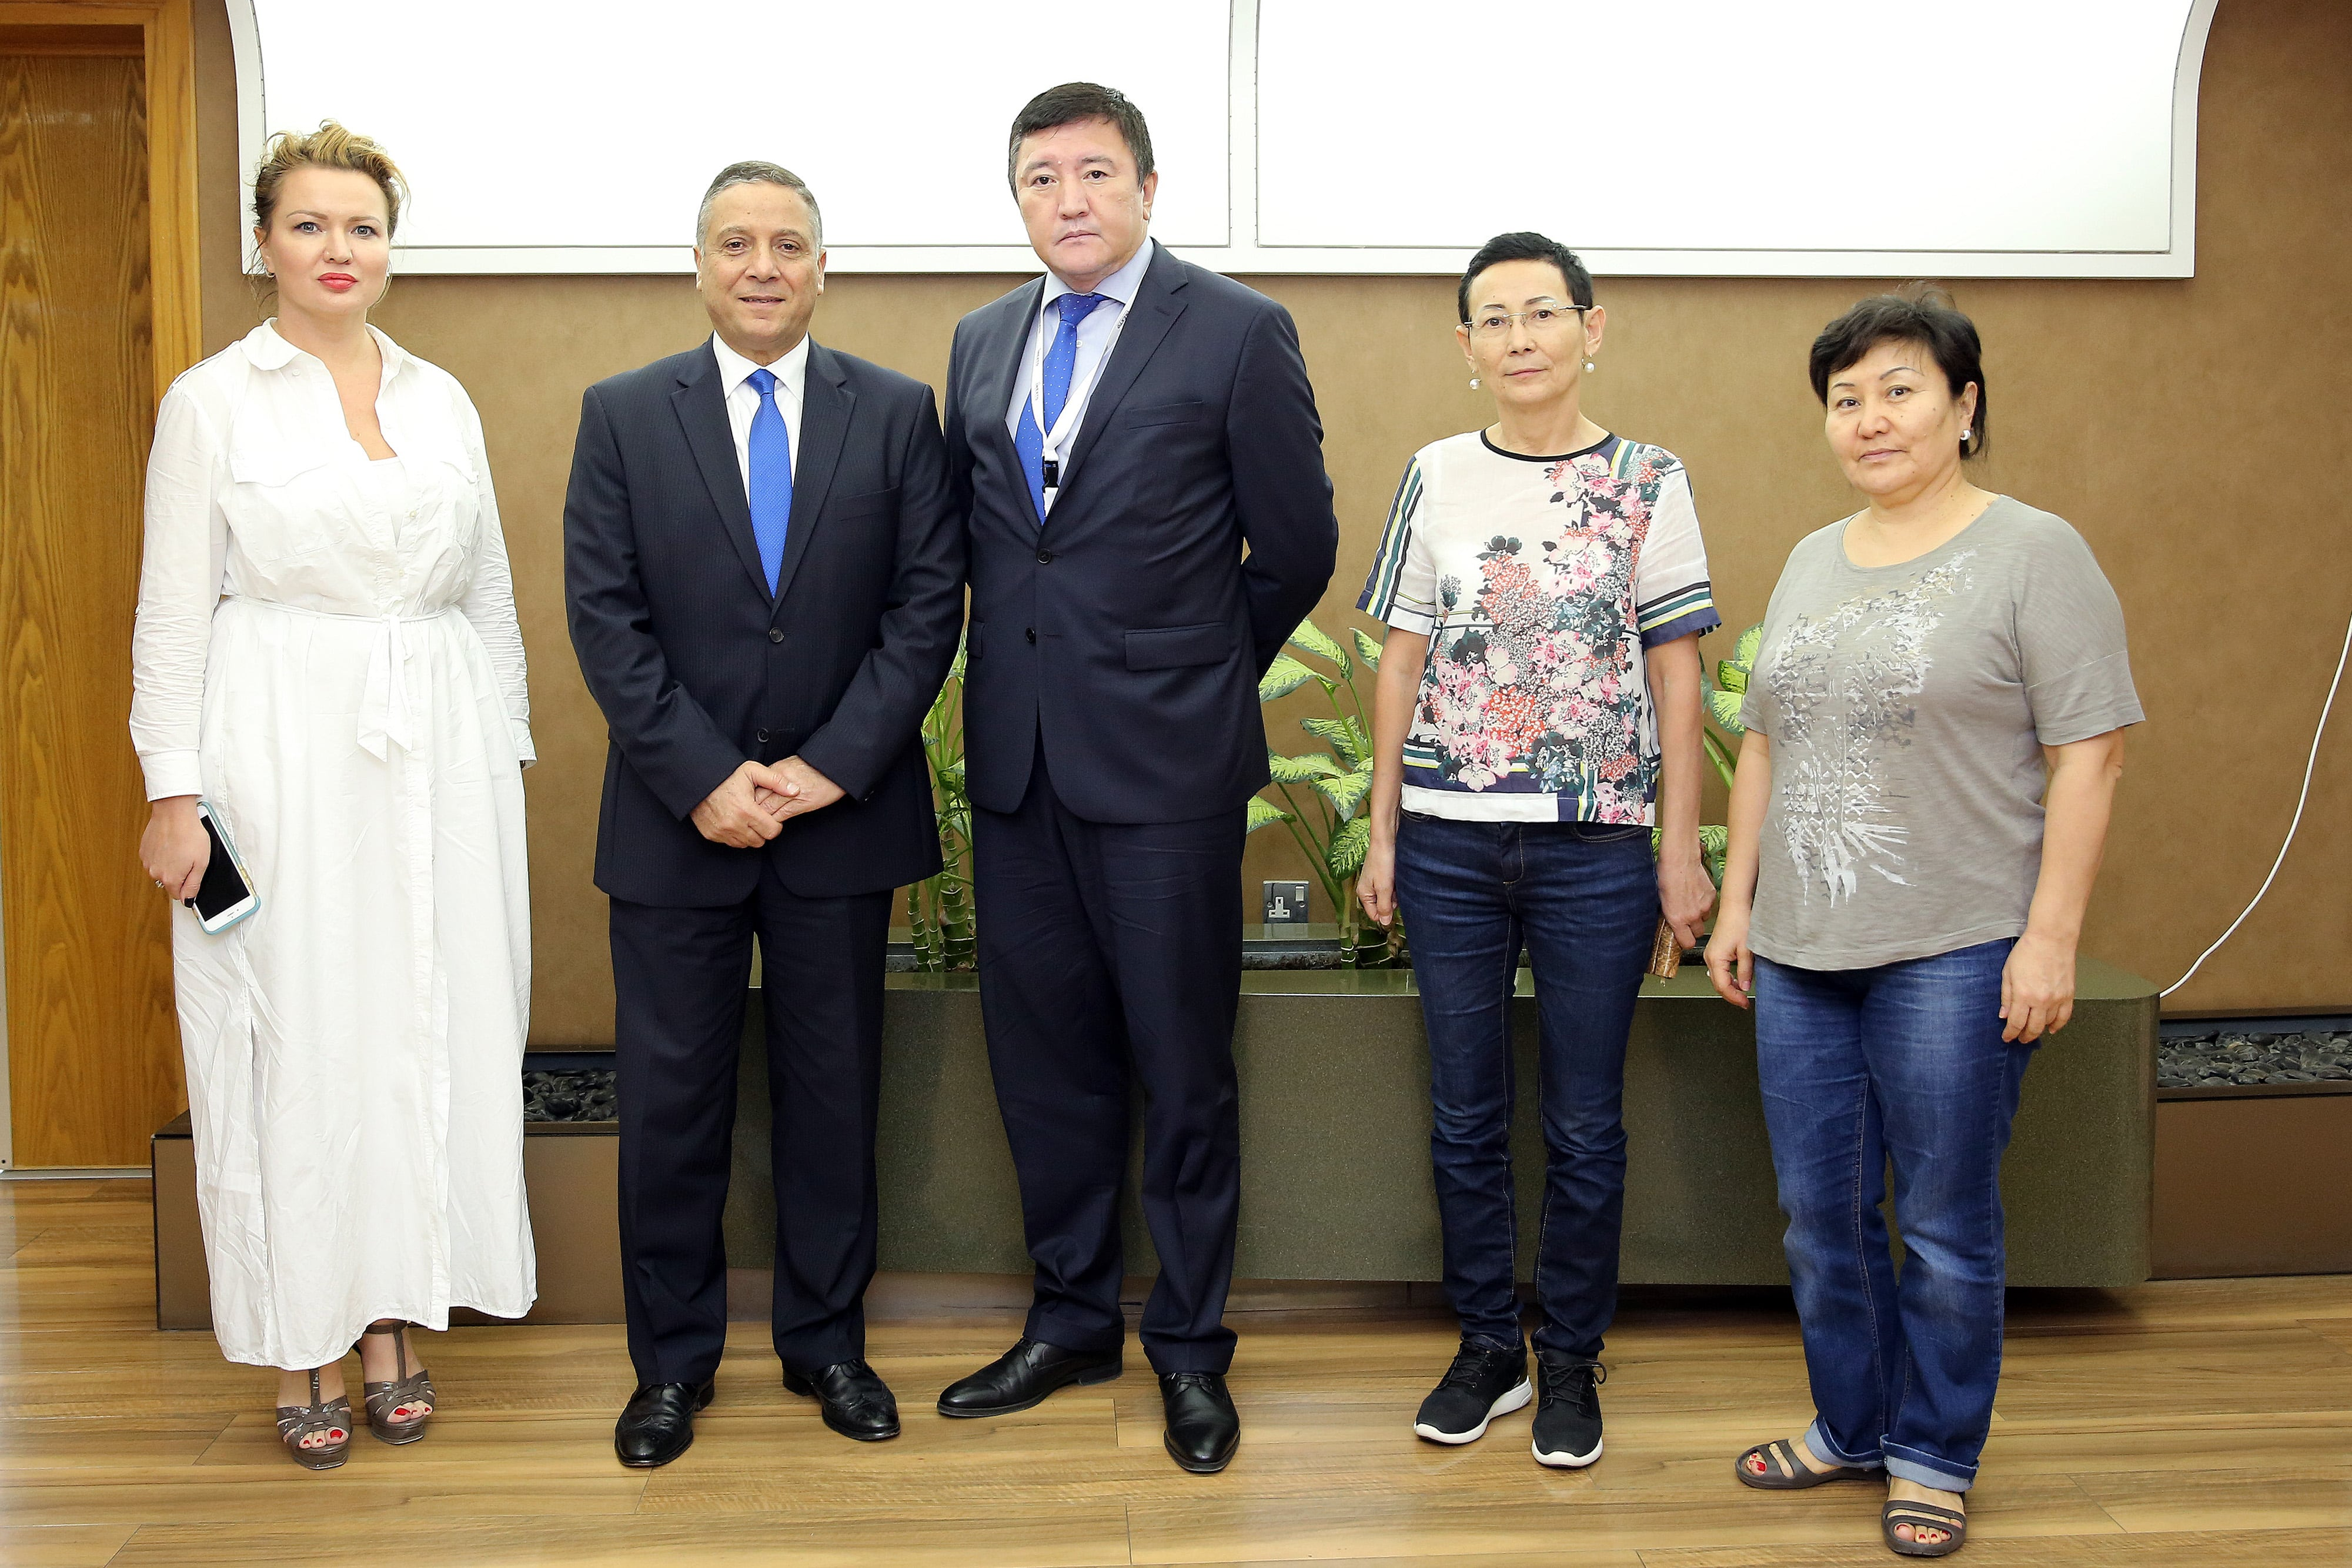 The Counselor of the Embassy of Kazakhstan to the UAE visits Julphar